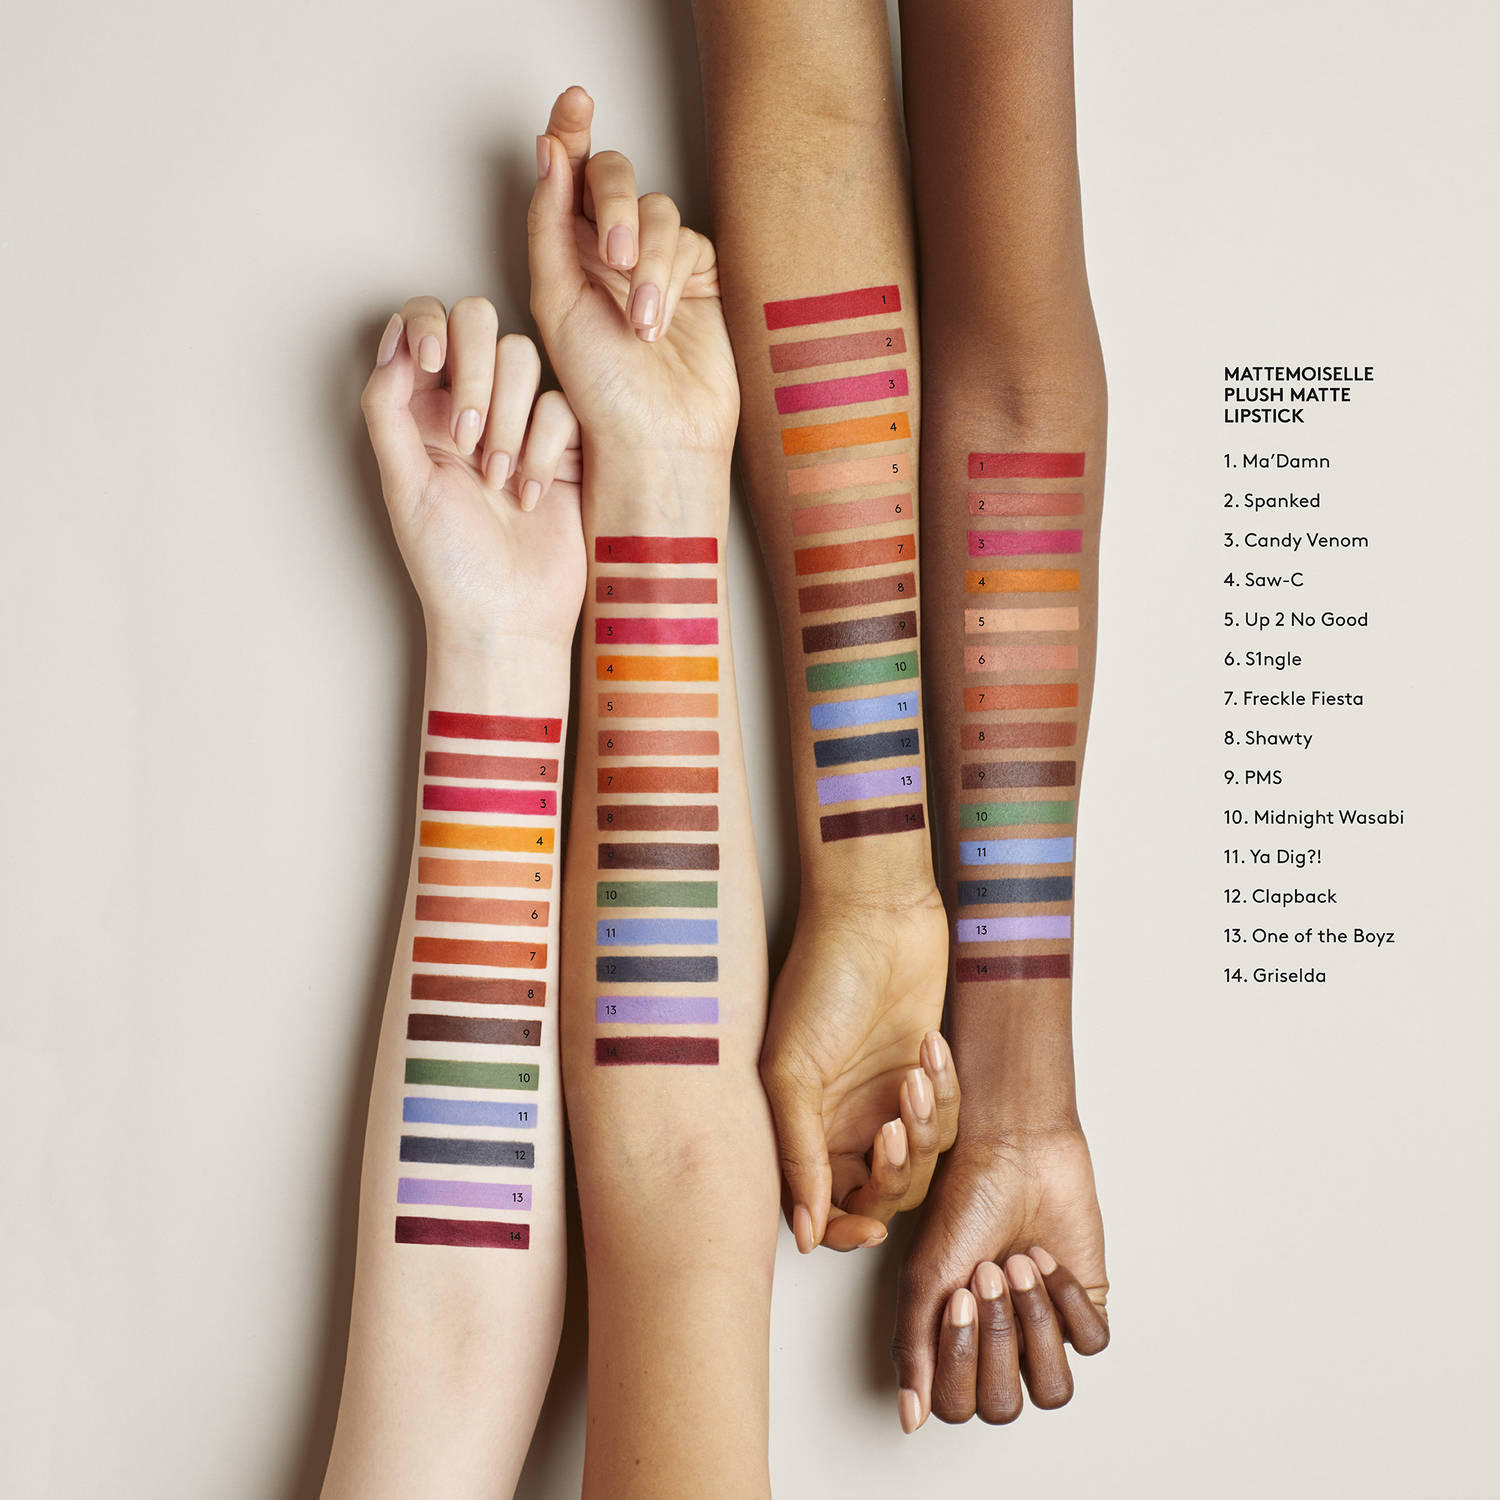 fenty beauty mattemoiselle swatches